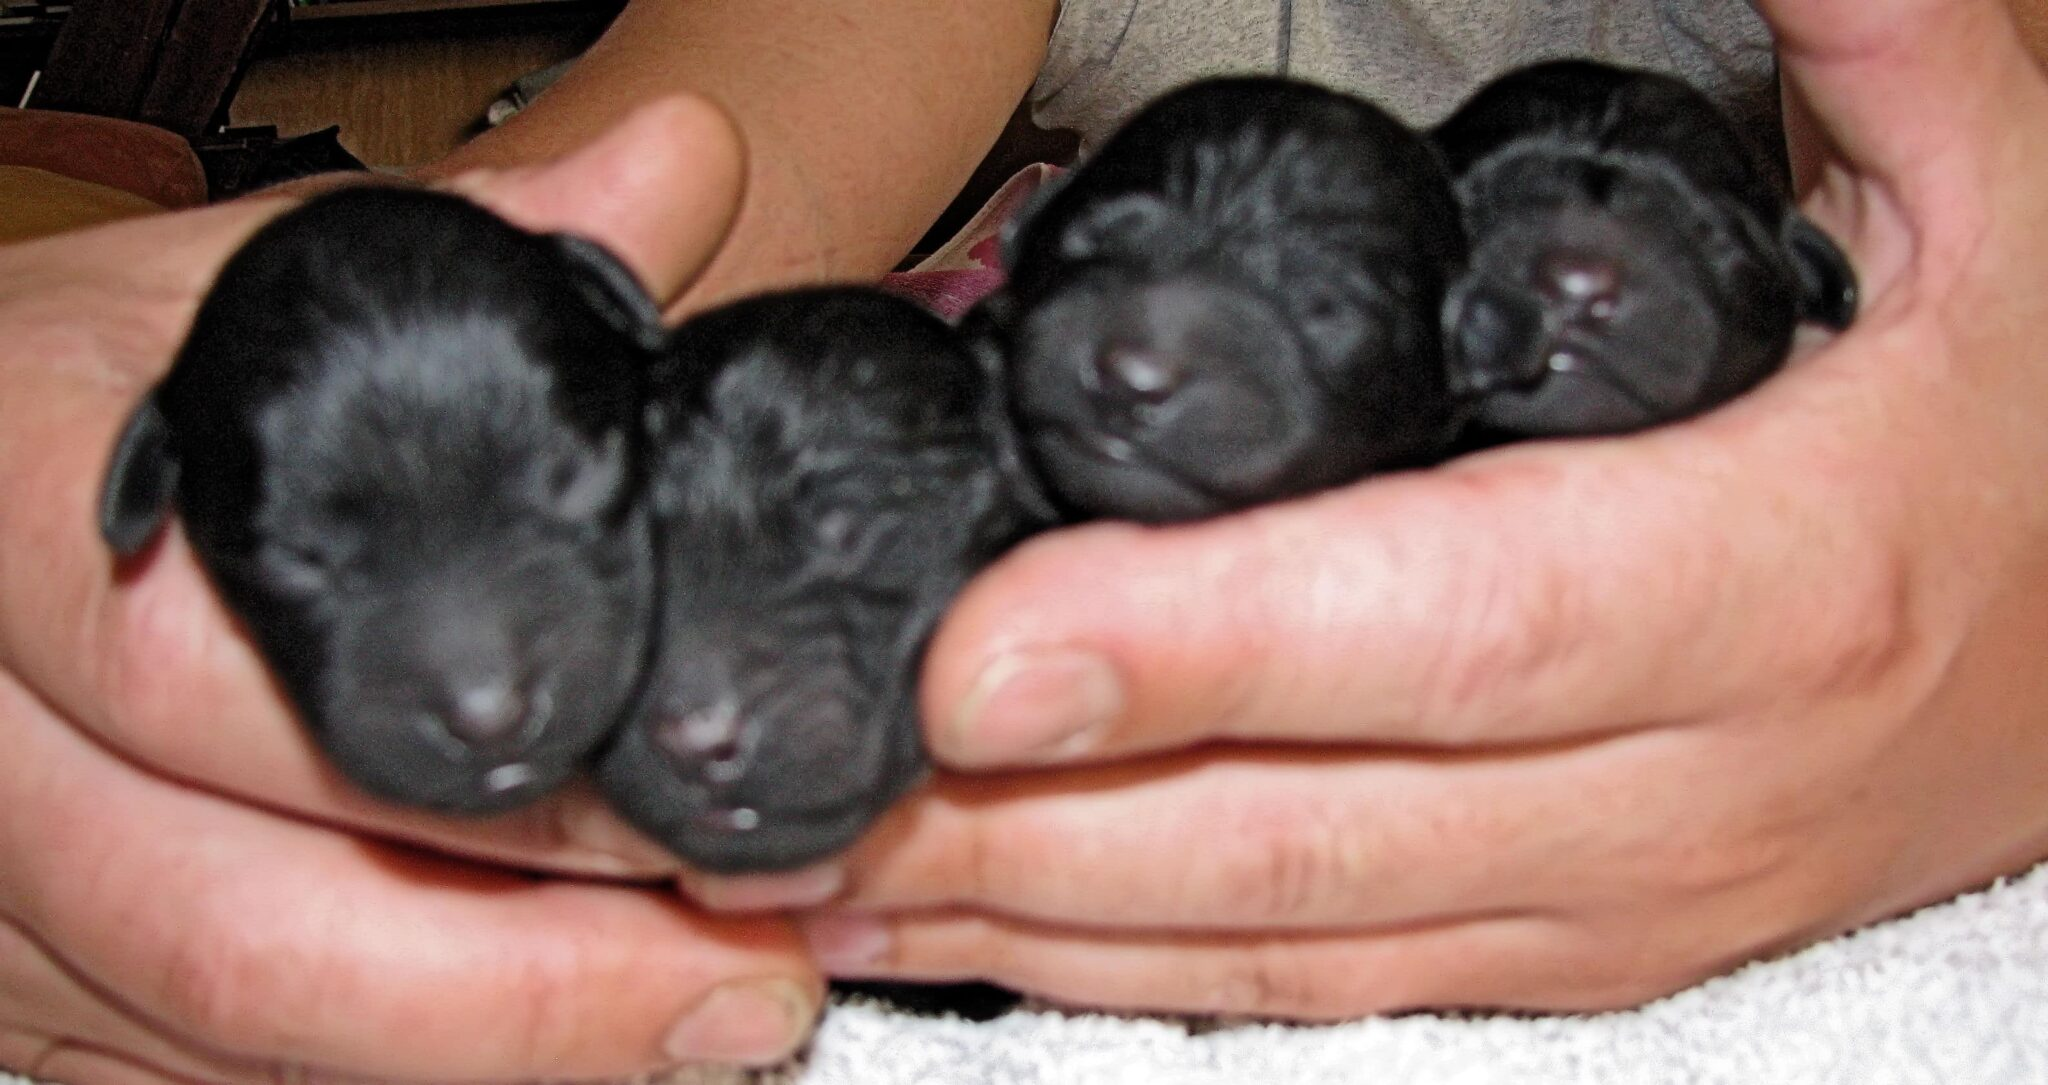 Puli breeder of Pulindo's puppies 4 puppies in hand